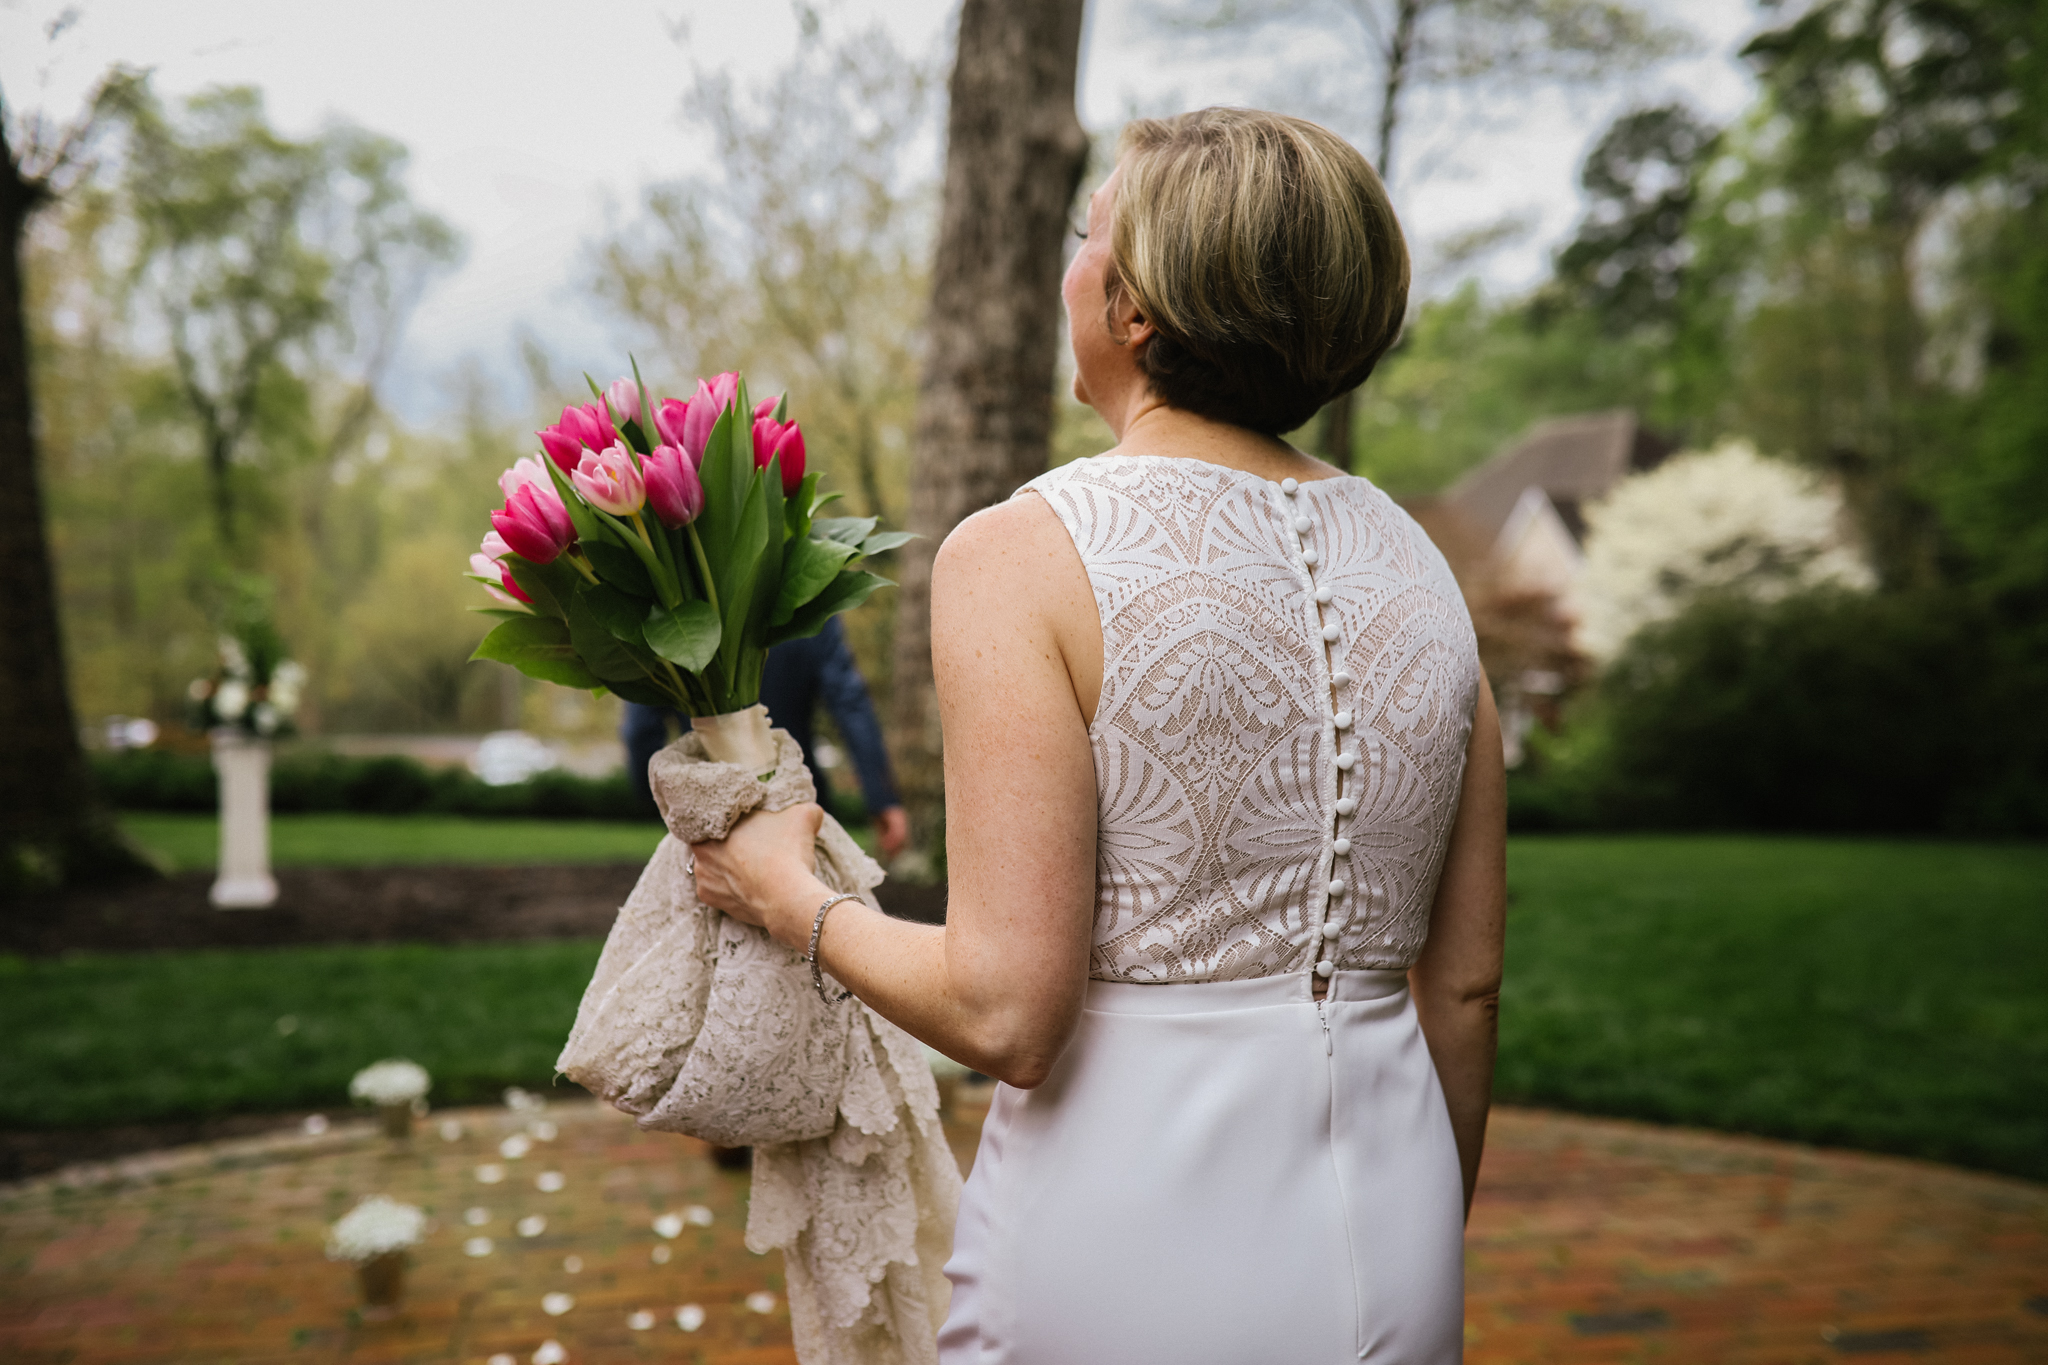 cook_wedding_richmond_virginia_rebecca_burt_photography-58.jpg